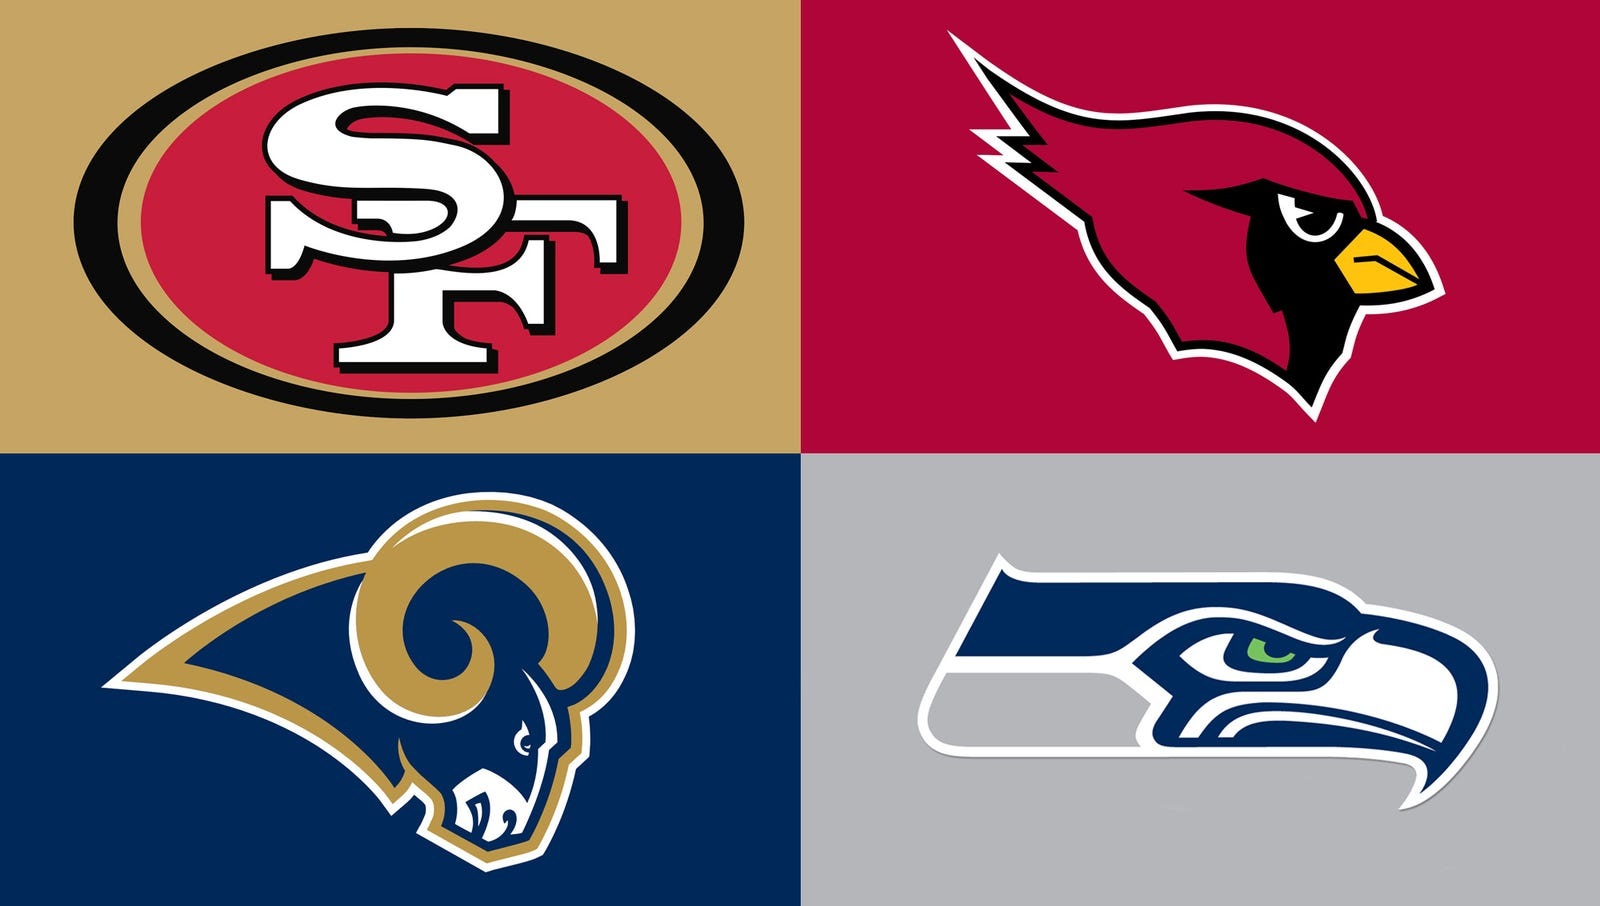 With the 2014 NFL season kicking off this week, Onion Sports has in-depth analysis on each team in the NFC West.